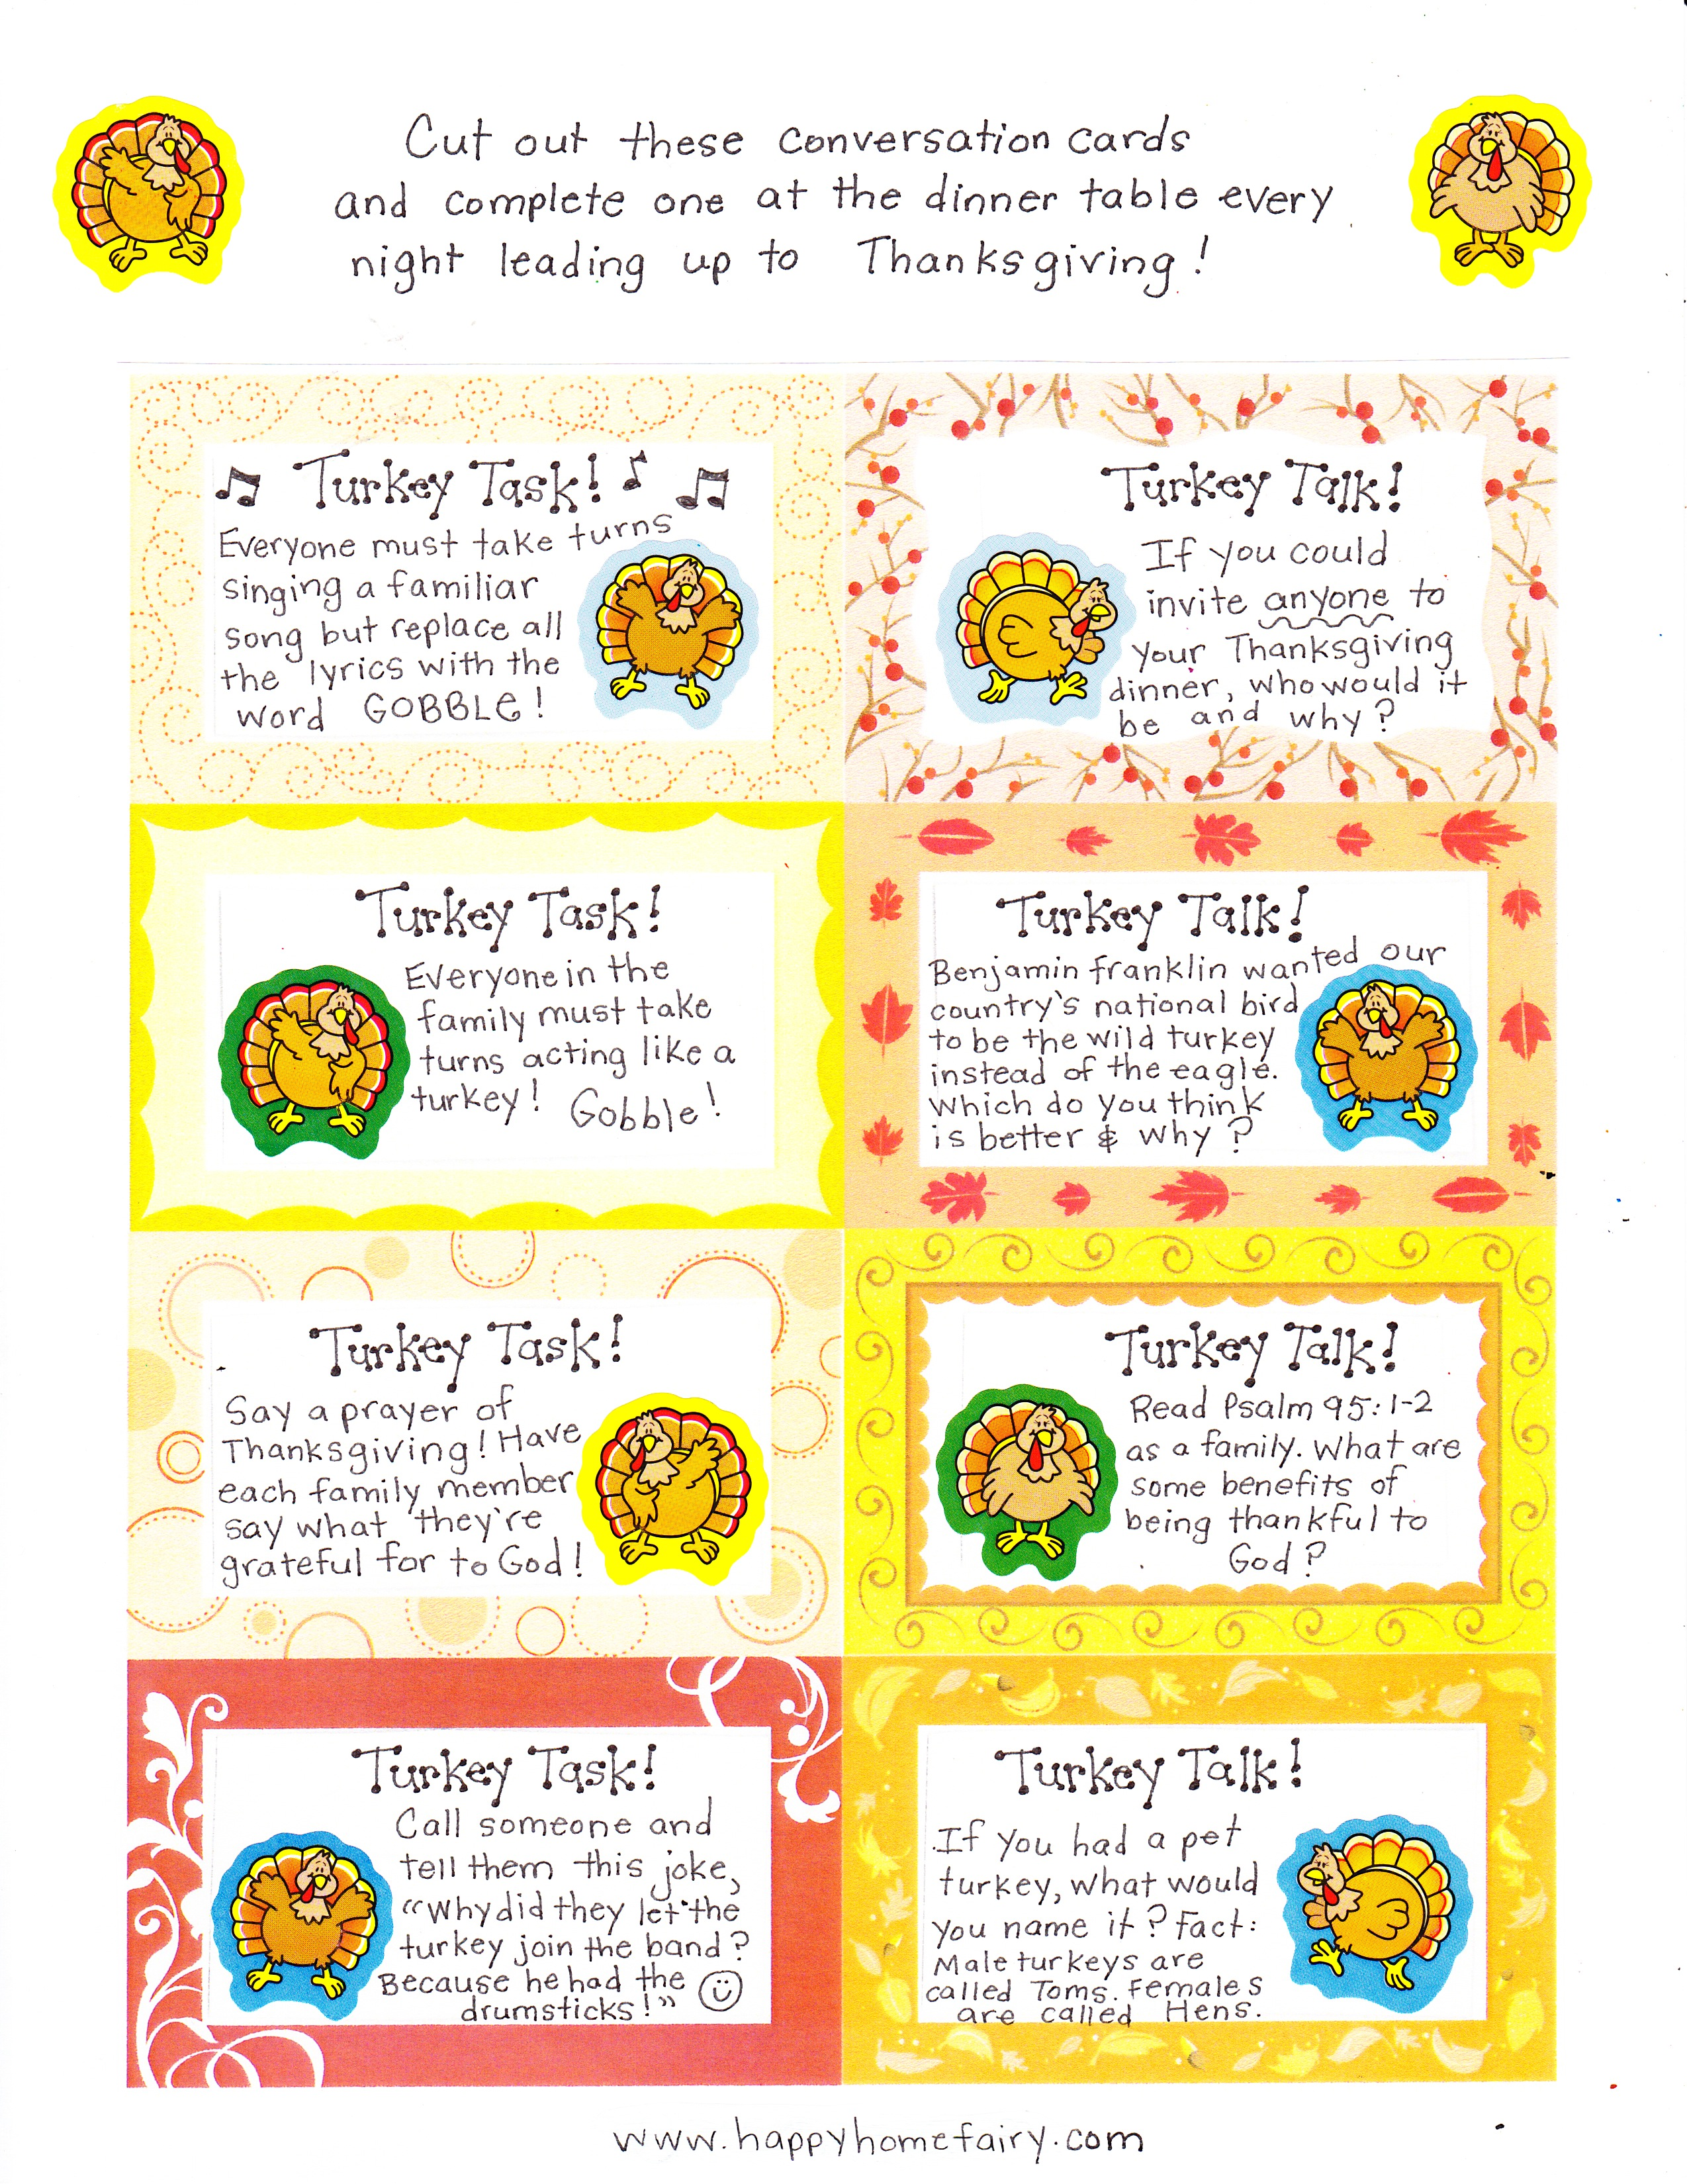 image about Printable Conversation Cards named Thanksgiving Interaction Playing cards - Cost-free Printables! - Delighted